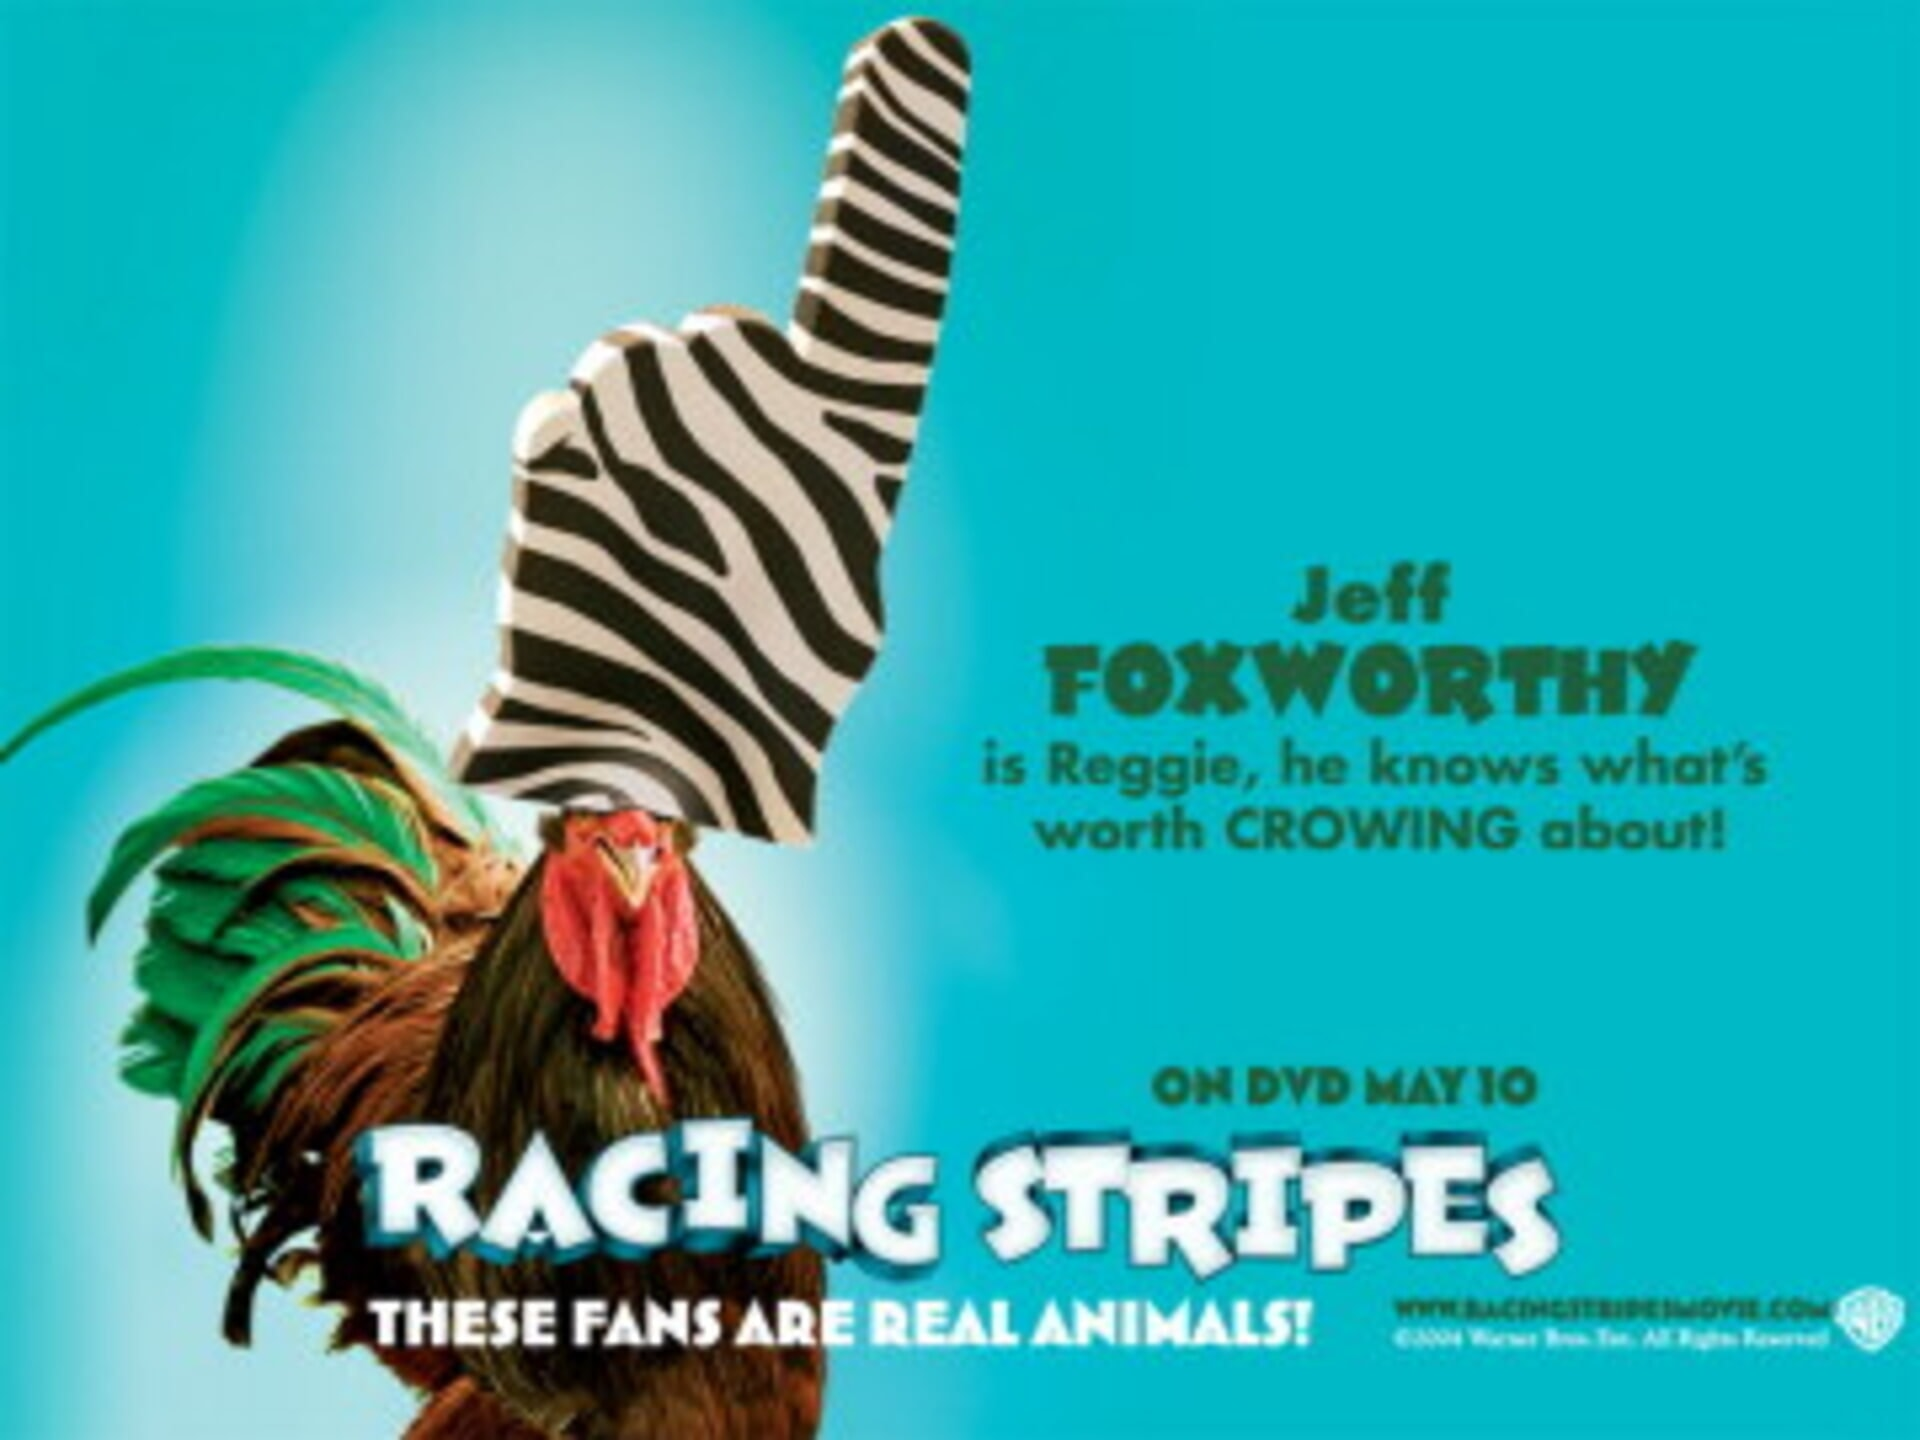 Racing Stripes - Image 52